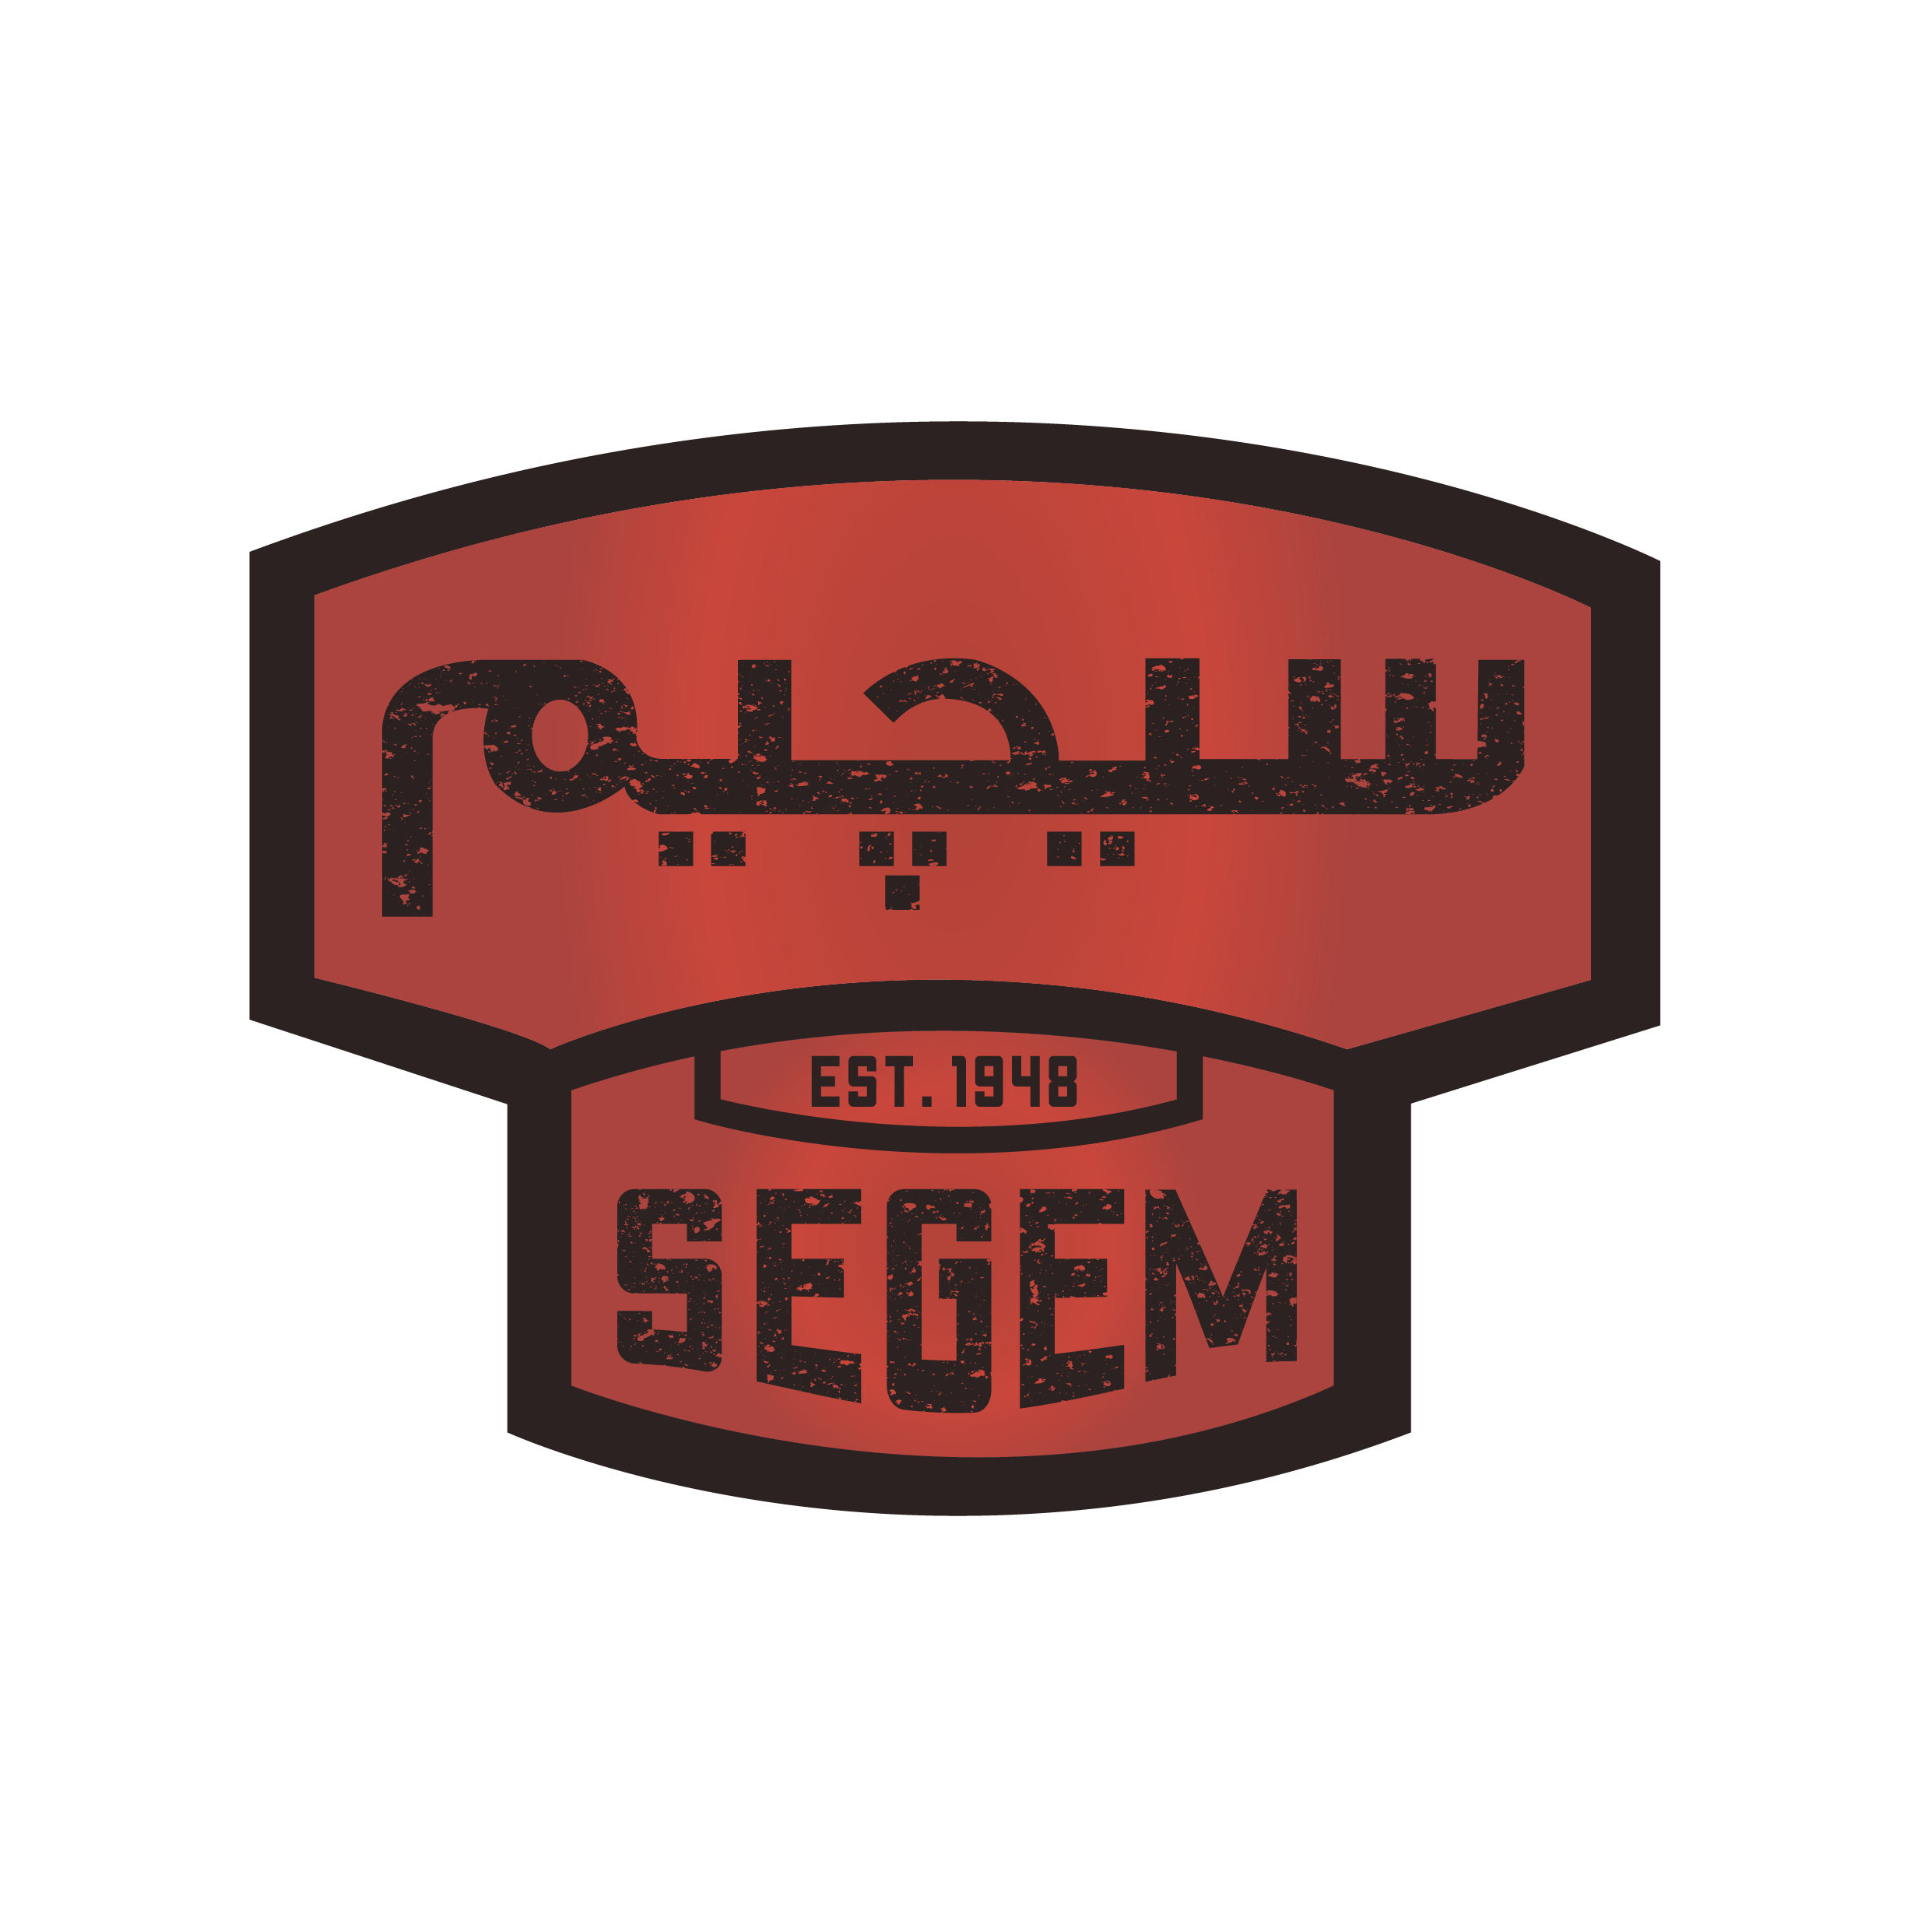 segem for elevators - logo